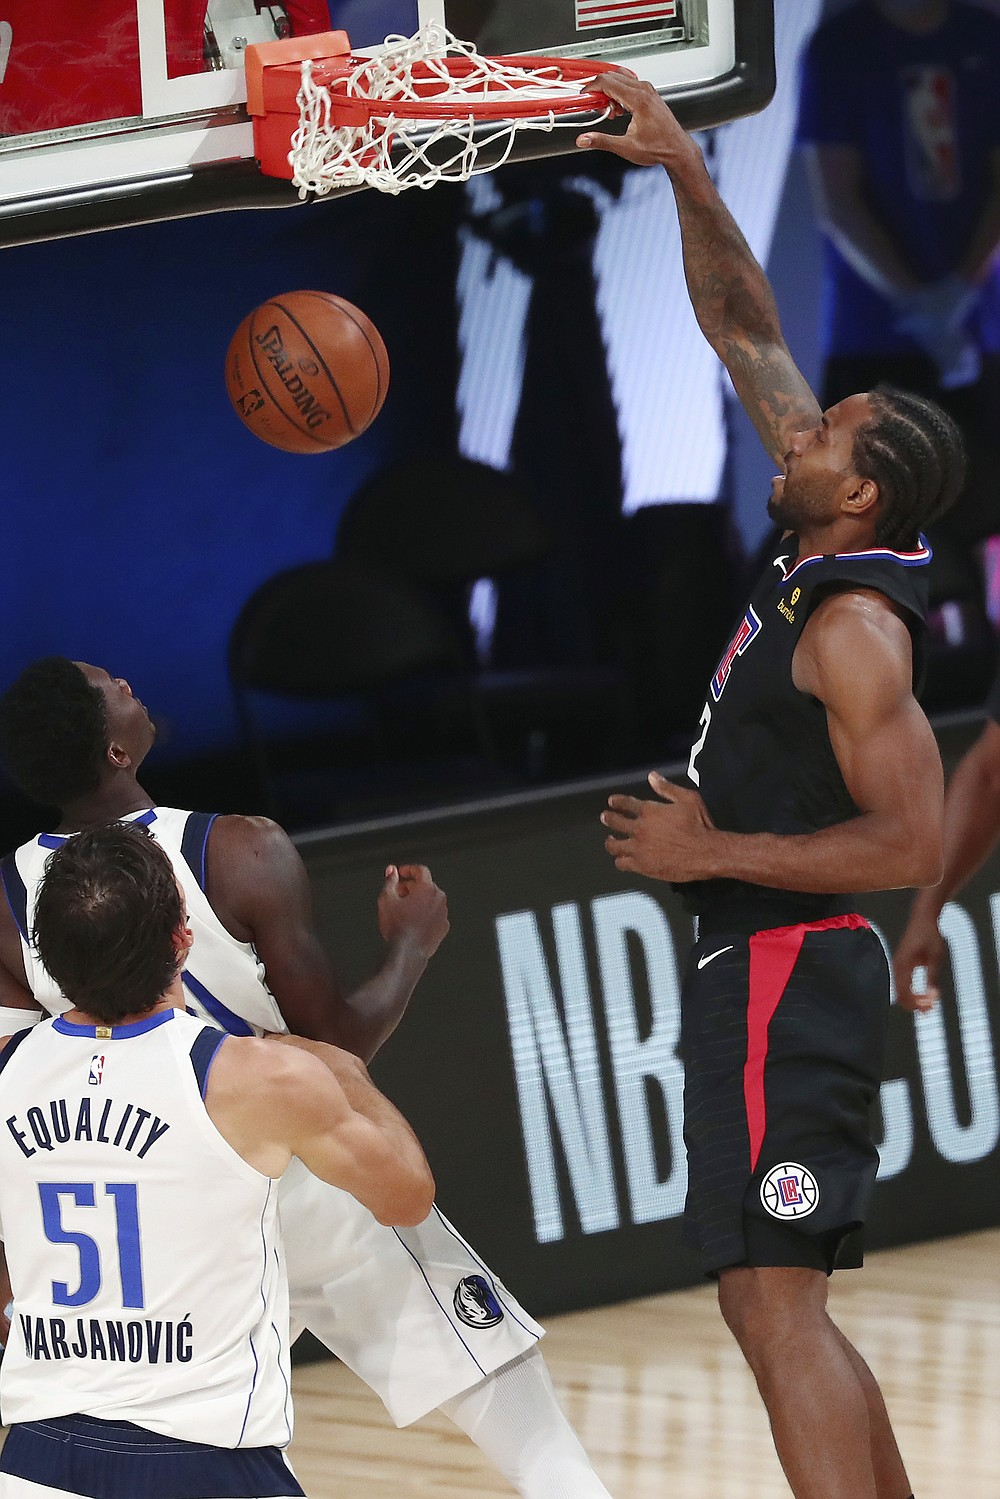 Los Angeles Clippers forward Kawhi Leonard dunks over Dallas Mavericks center Boban Marjanovic (51) and forward Dorian Finney-Smith during the second half of Game 2 of an NBA basketball basketball first-round playoff series, Wednesday, Aug. 19, 2020, in Lake Buena Vista, Fla. (Kim Klement/Pool Photo via AP)